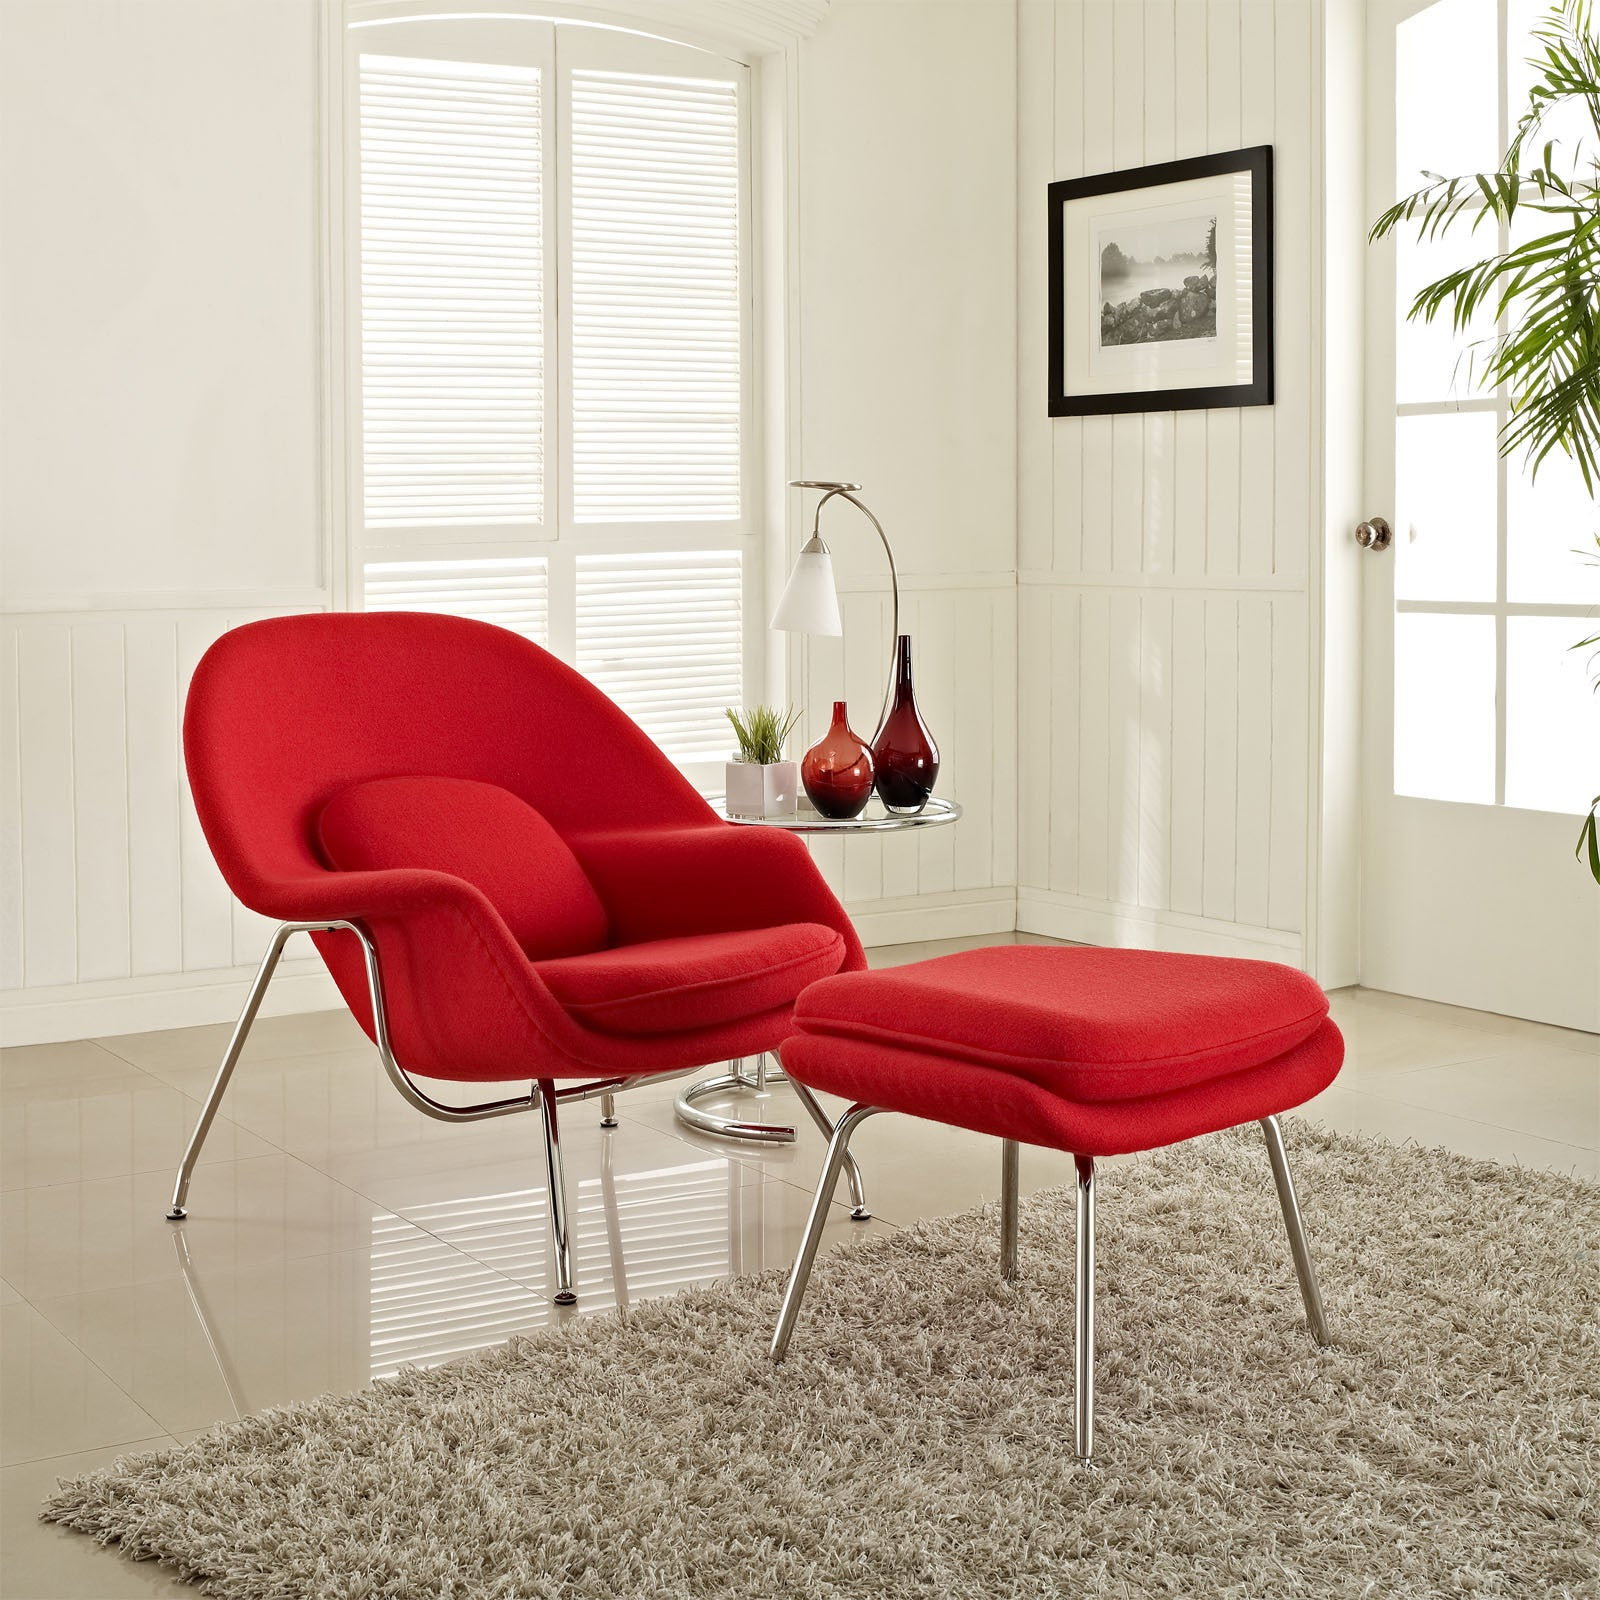 knoll ottoman chair saarinen eero by view top up interiors with object for womb